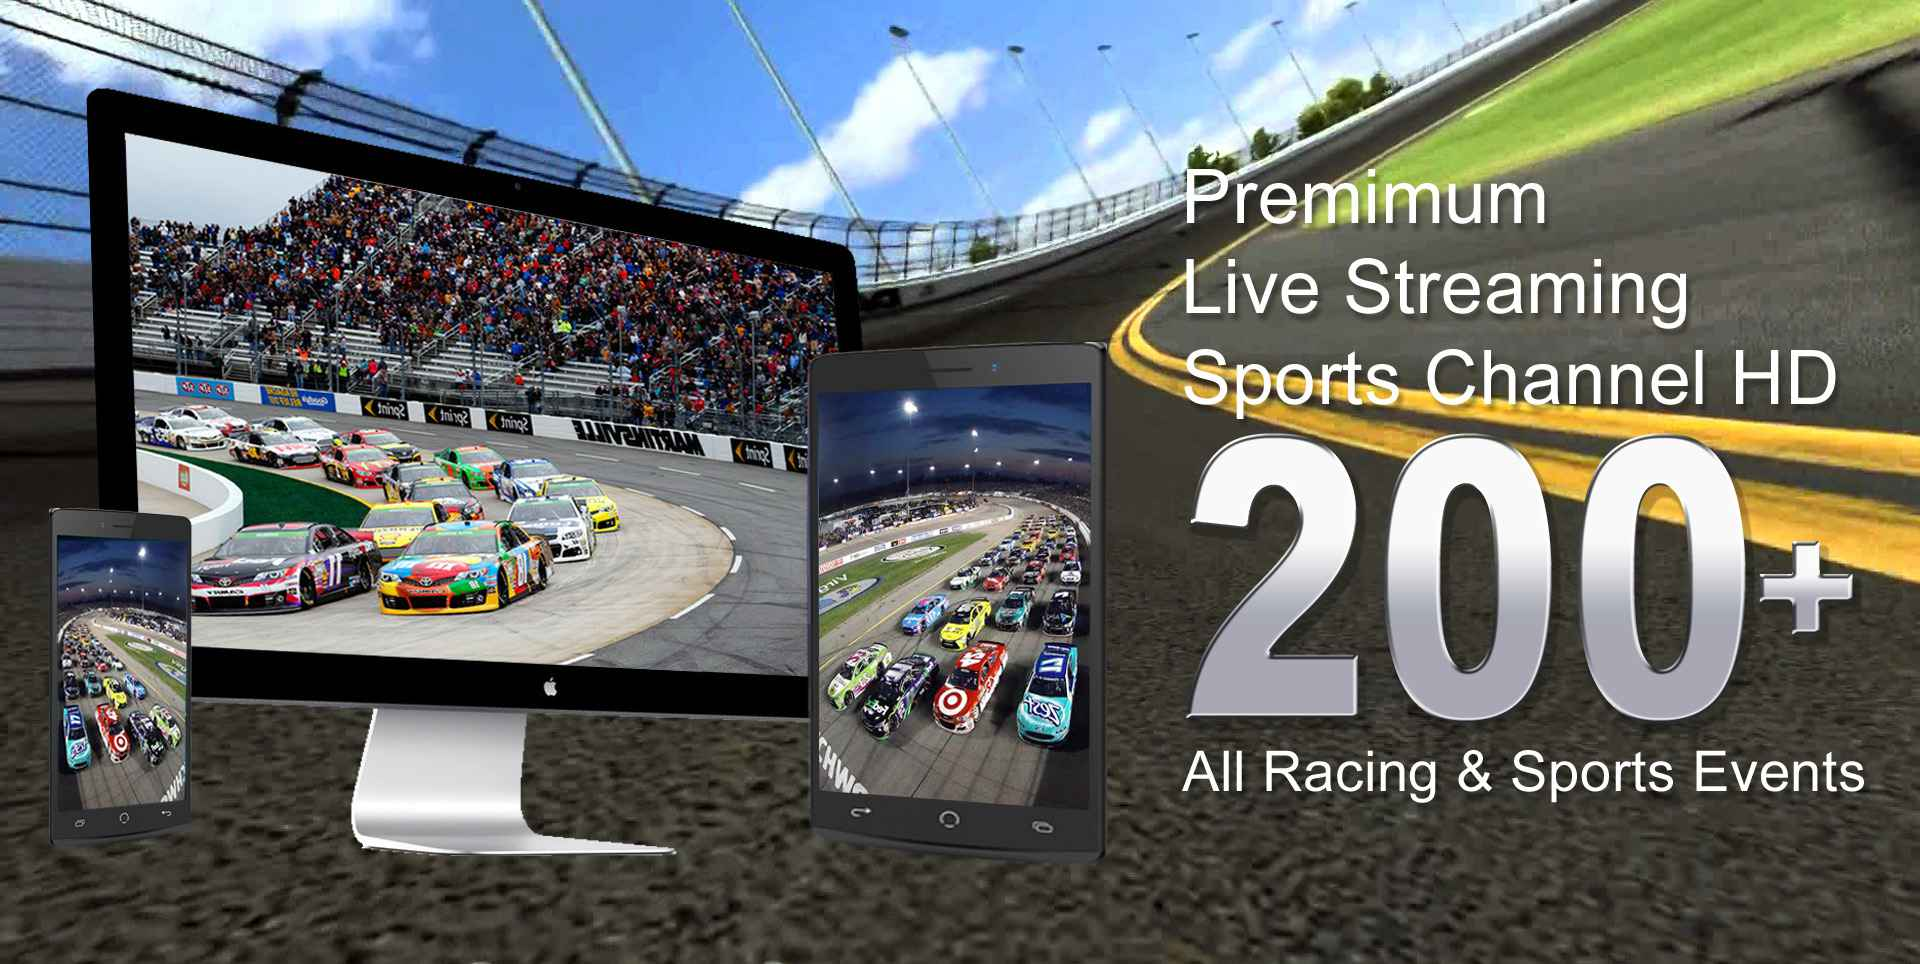 NASCAR Truck UNOH 200 Live Streaming